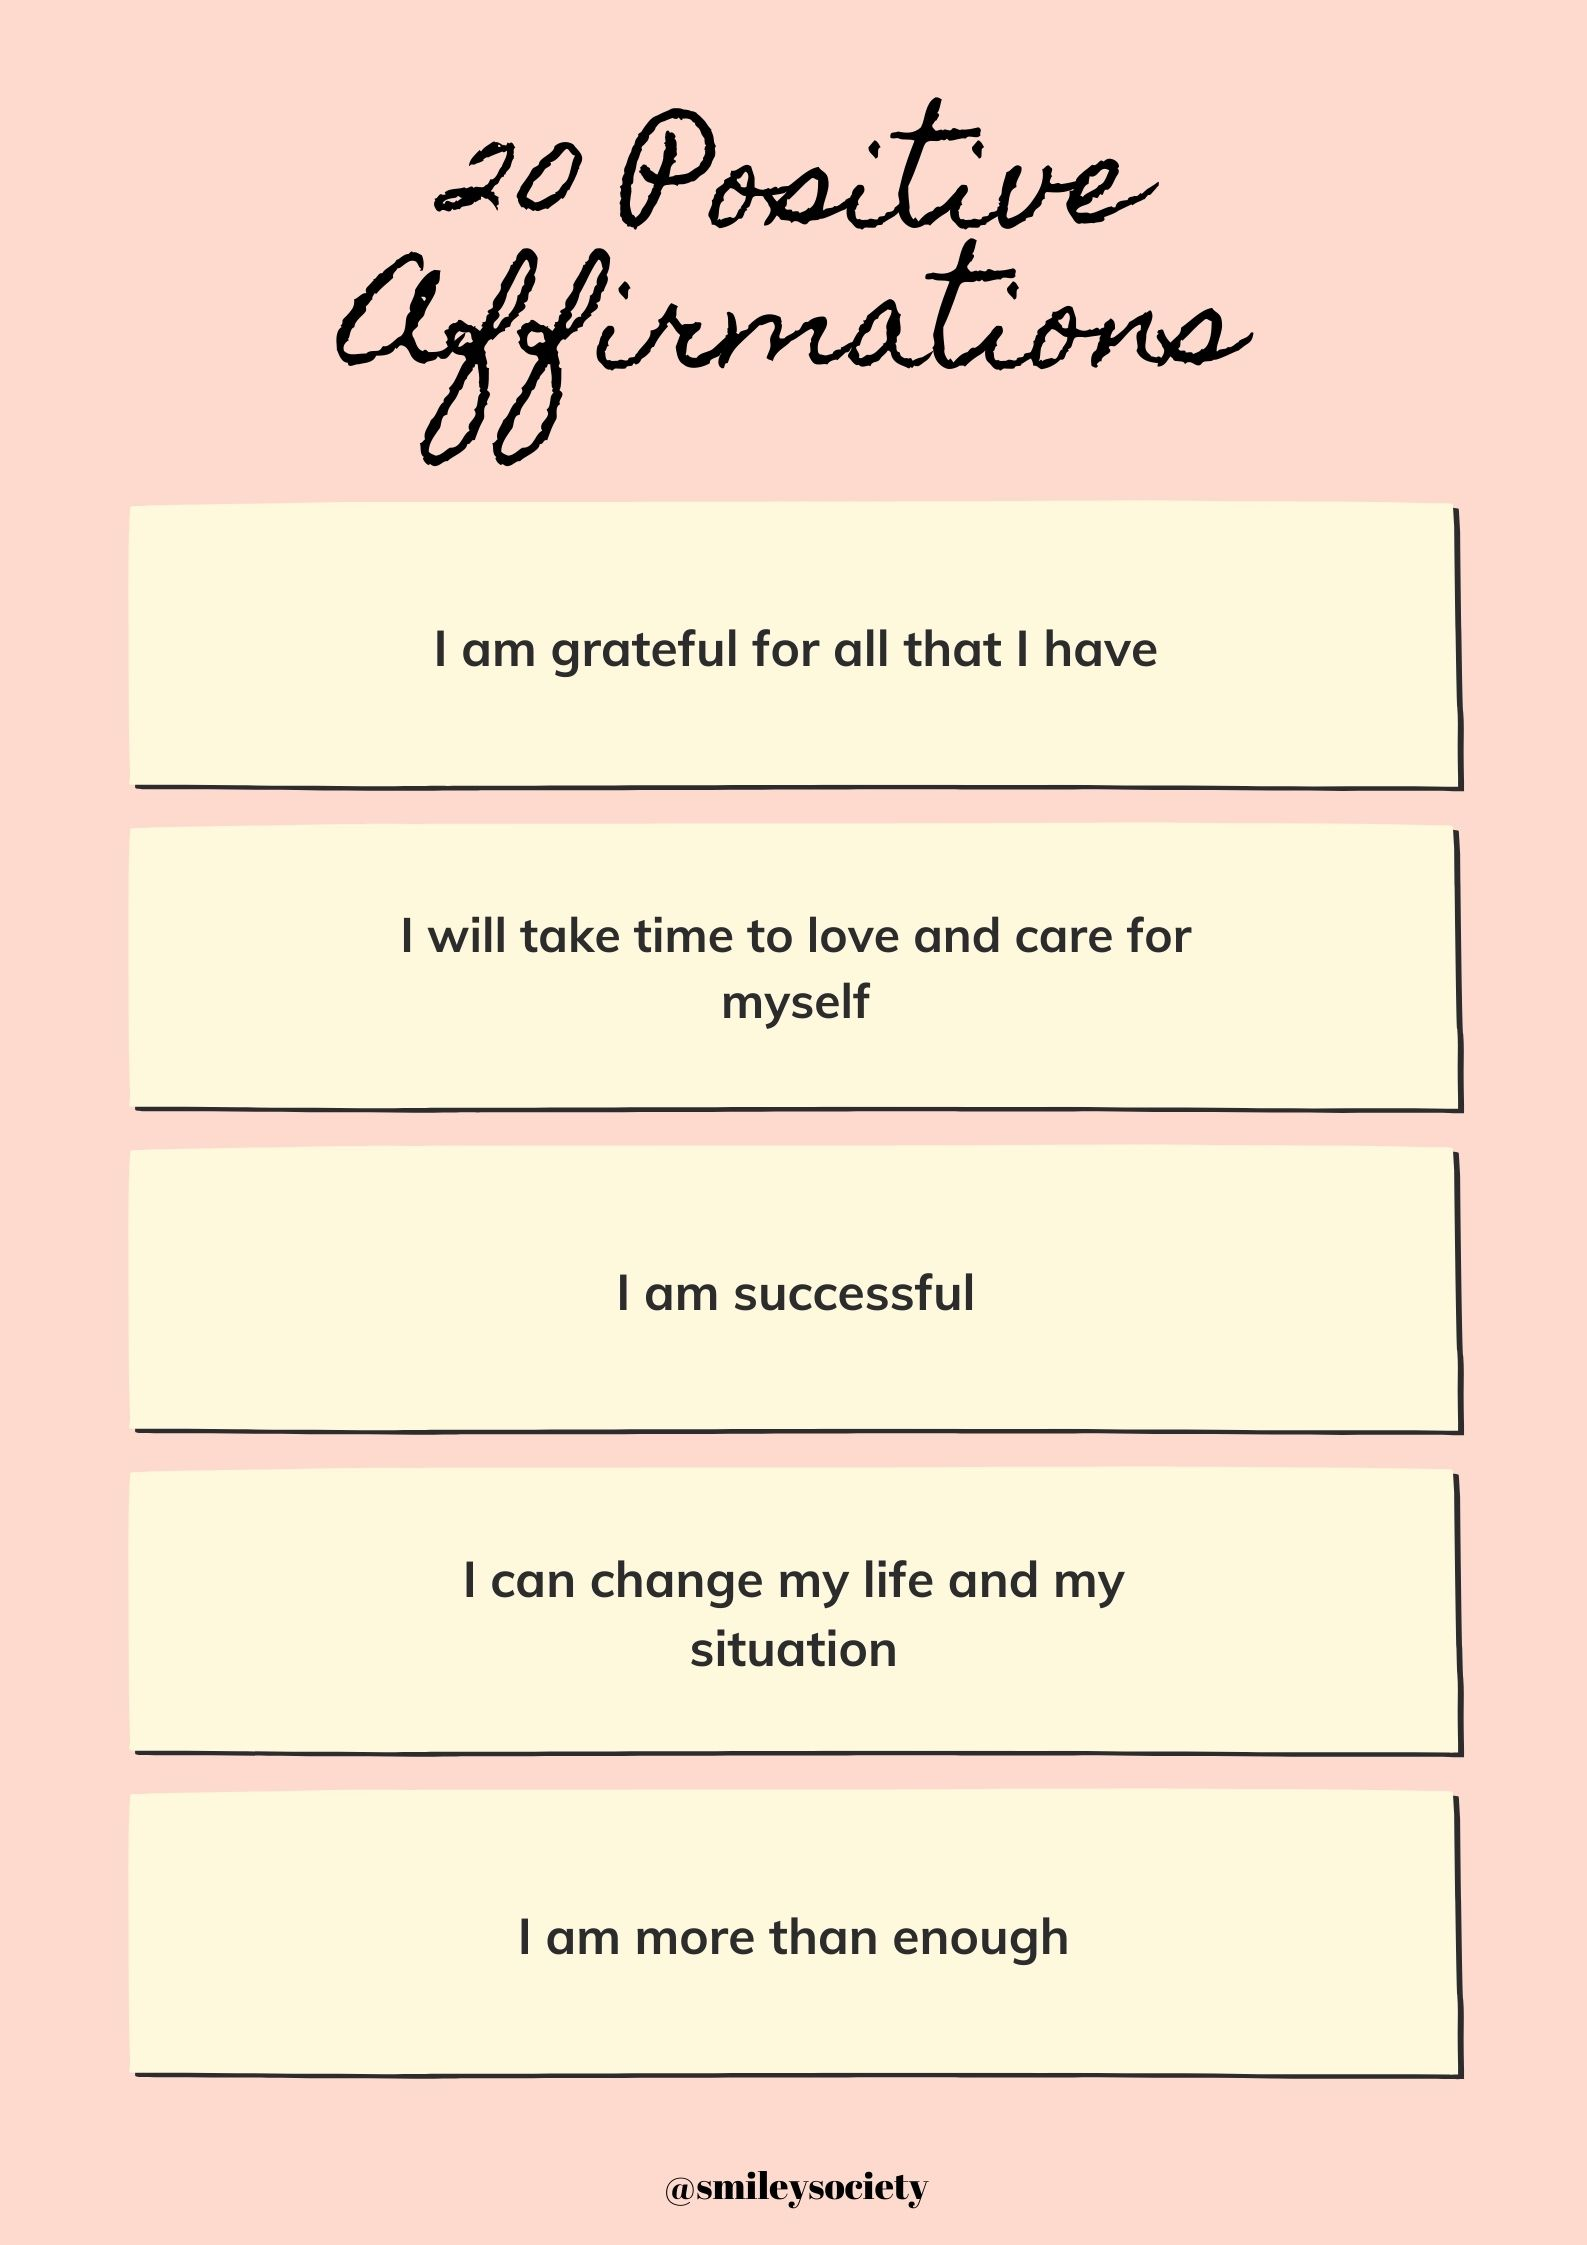 Positive affirmations 4